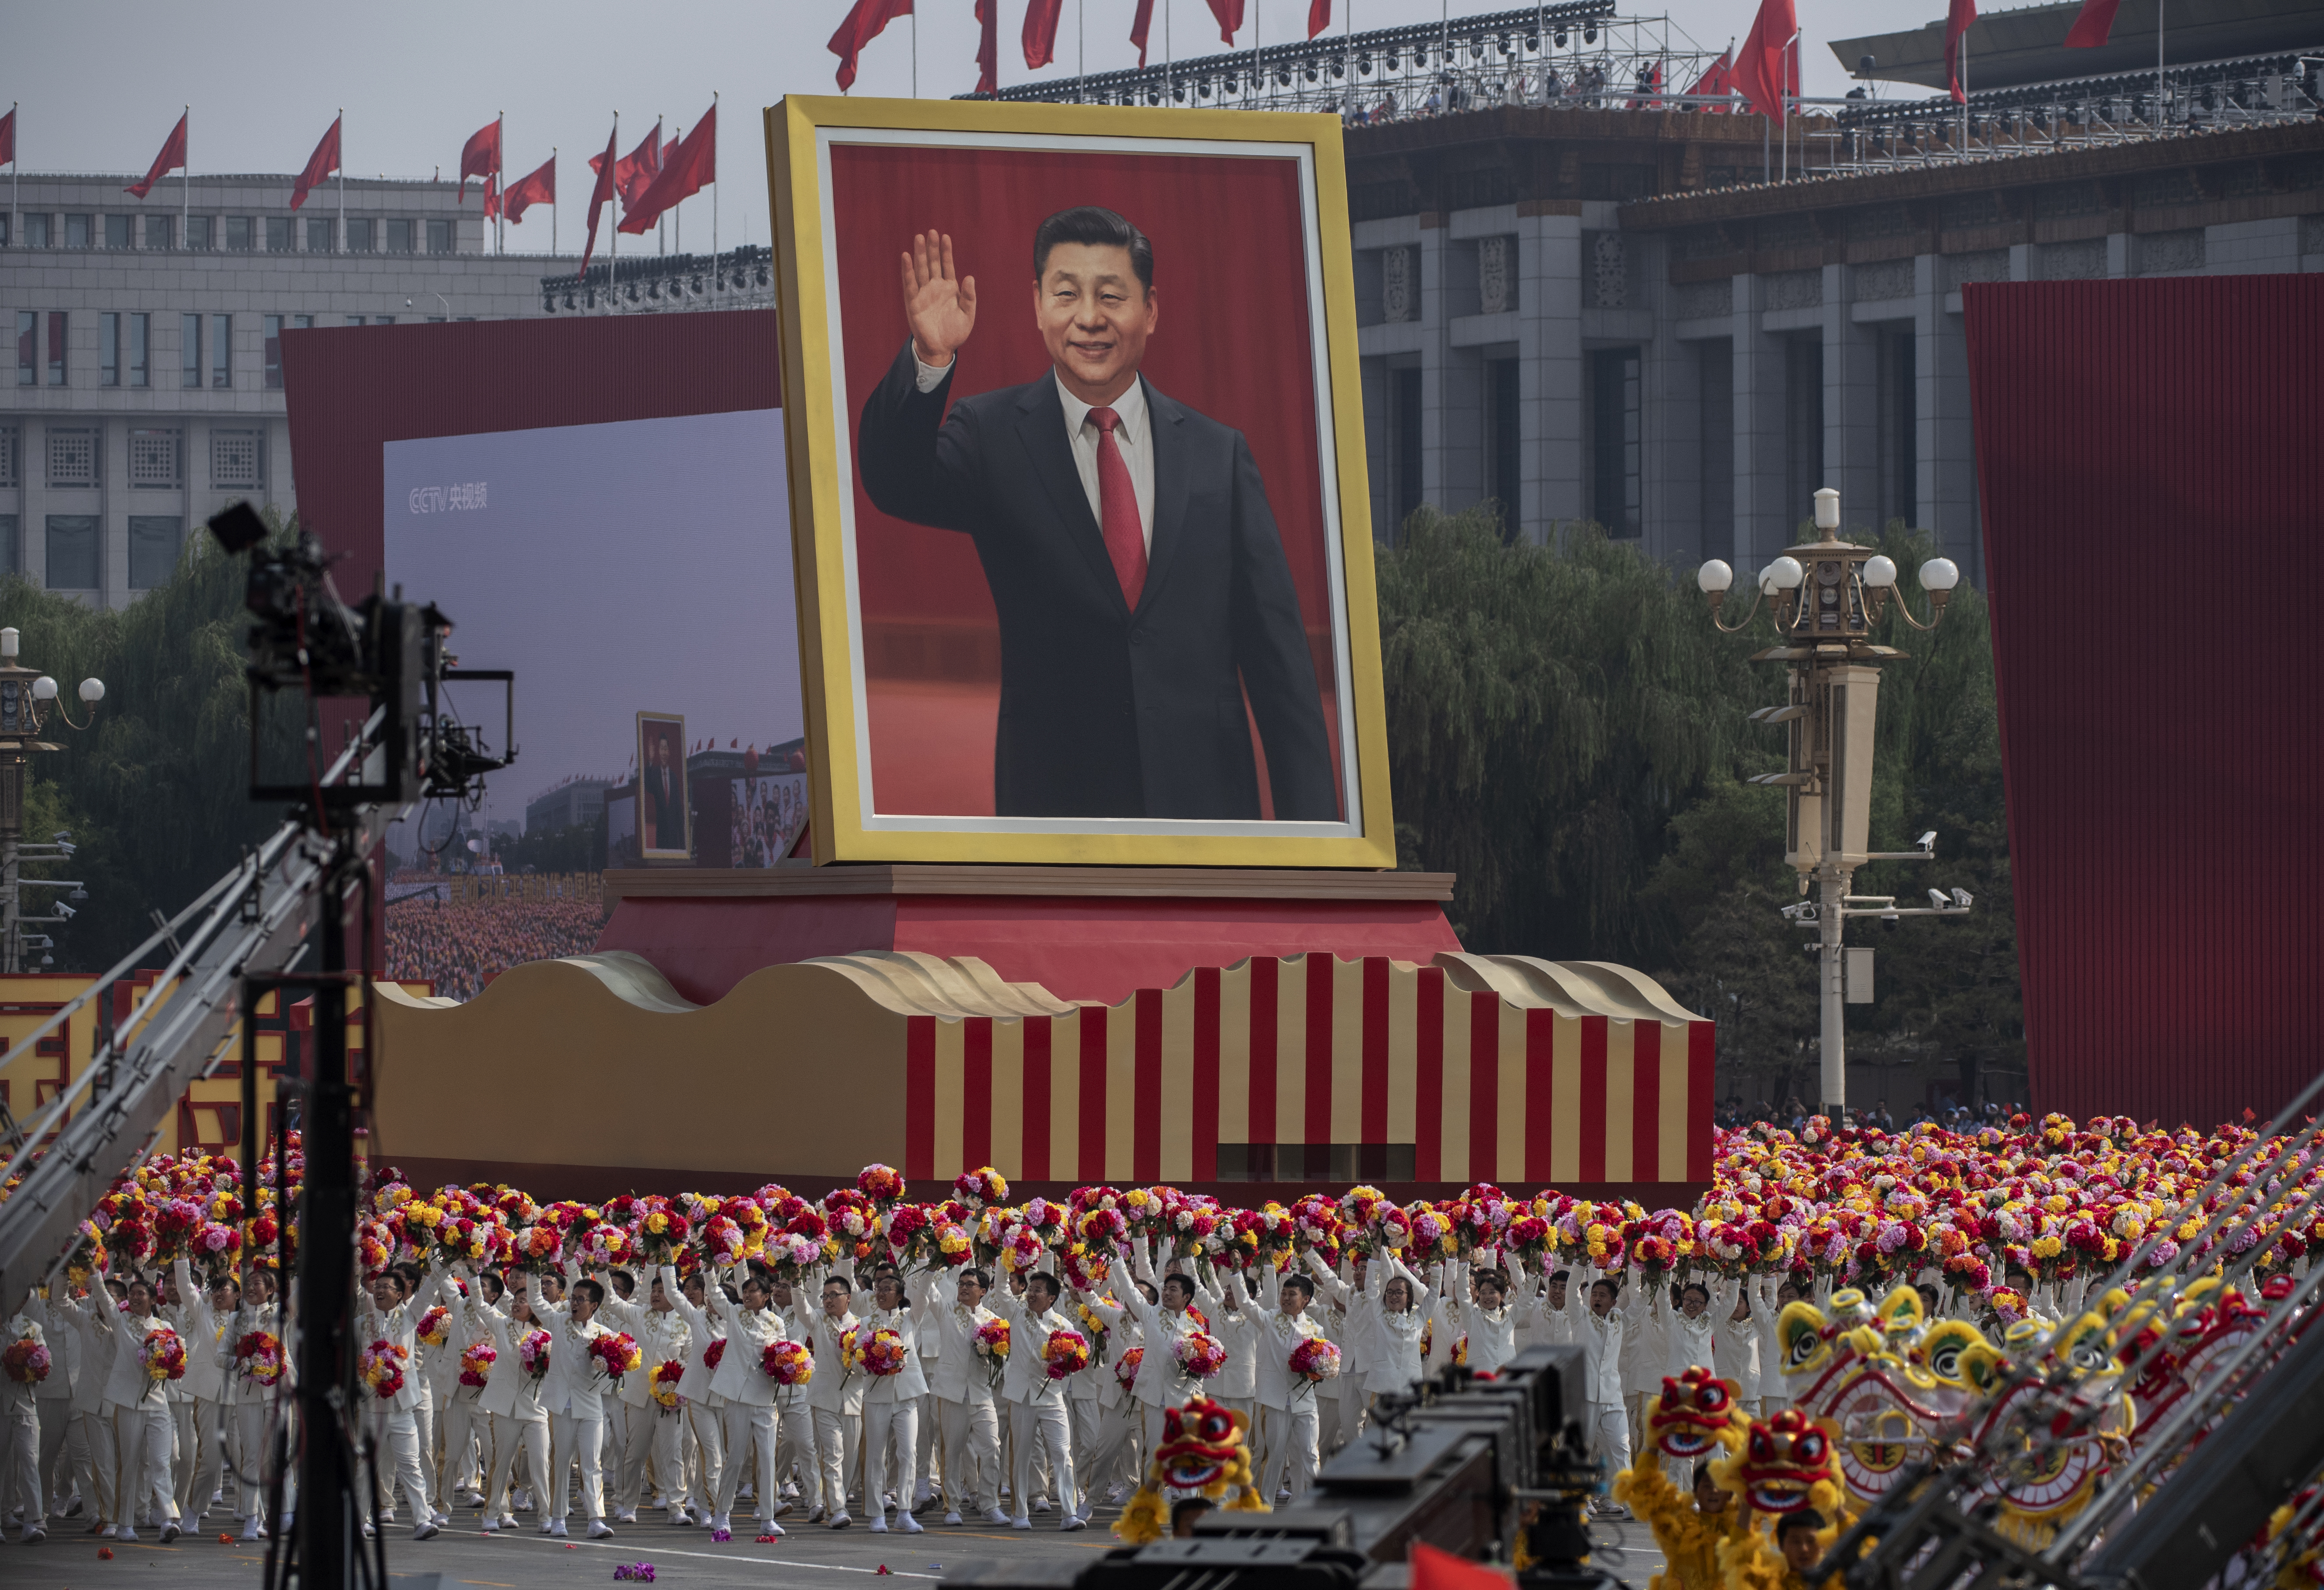 A giant portrait of Chinese President Xi Jinping at Tiananmen Square on October 1, 2019 in Beijing, China. (Photo by Kevin Frayer/Getty Images)